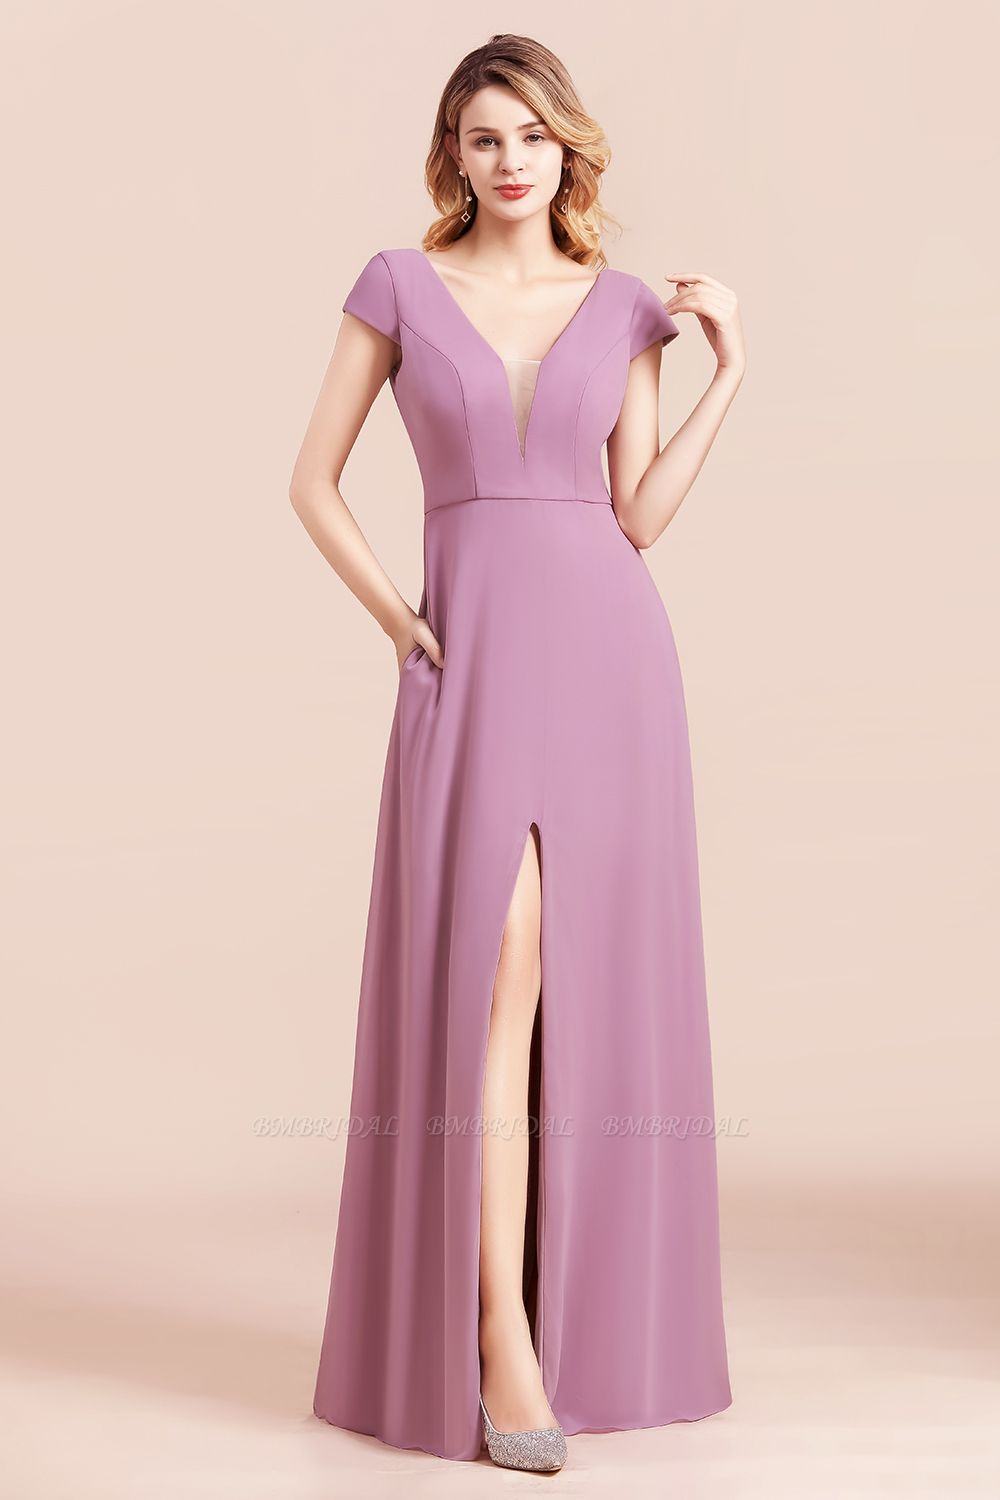 Chic V-Neck Chiffon Wisteria Bridesmaid Dresses with Short Sleeves